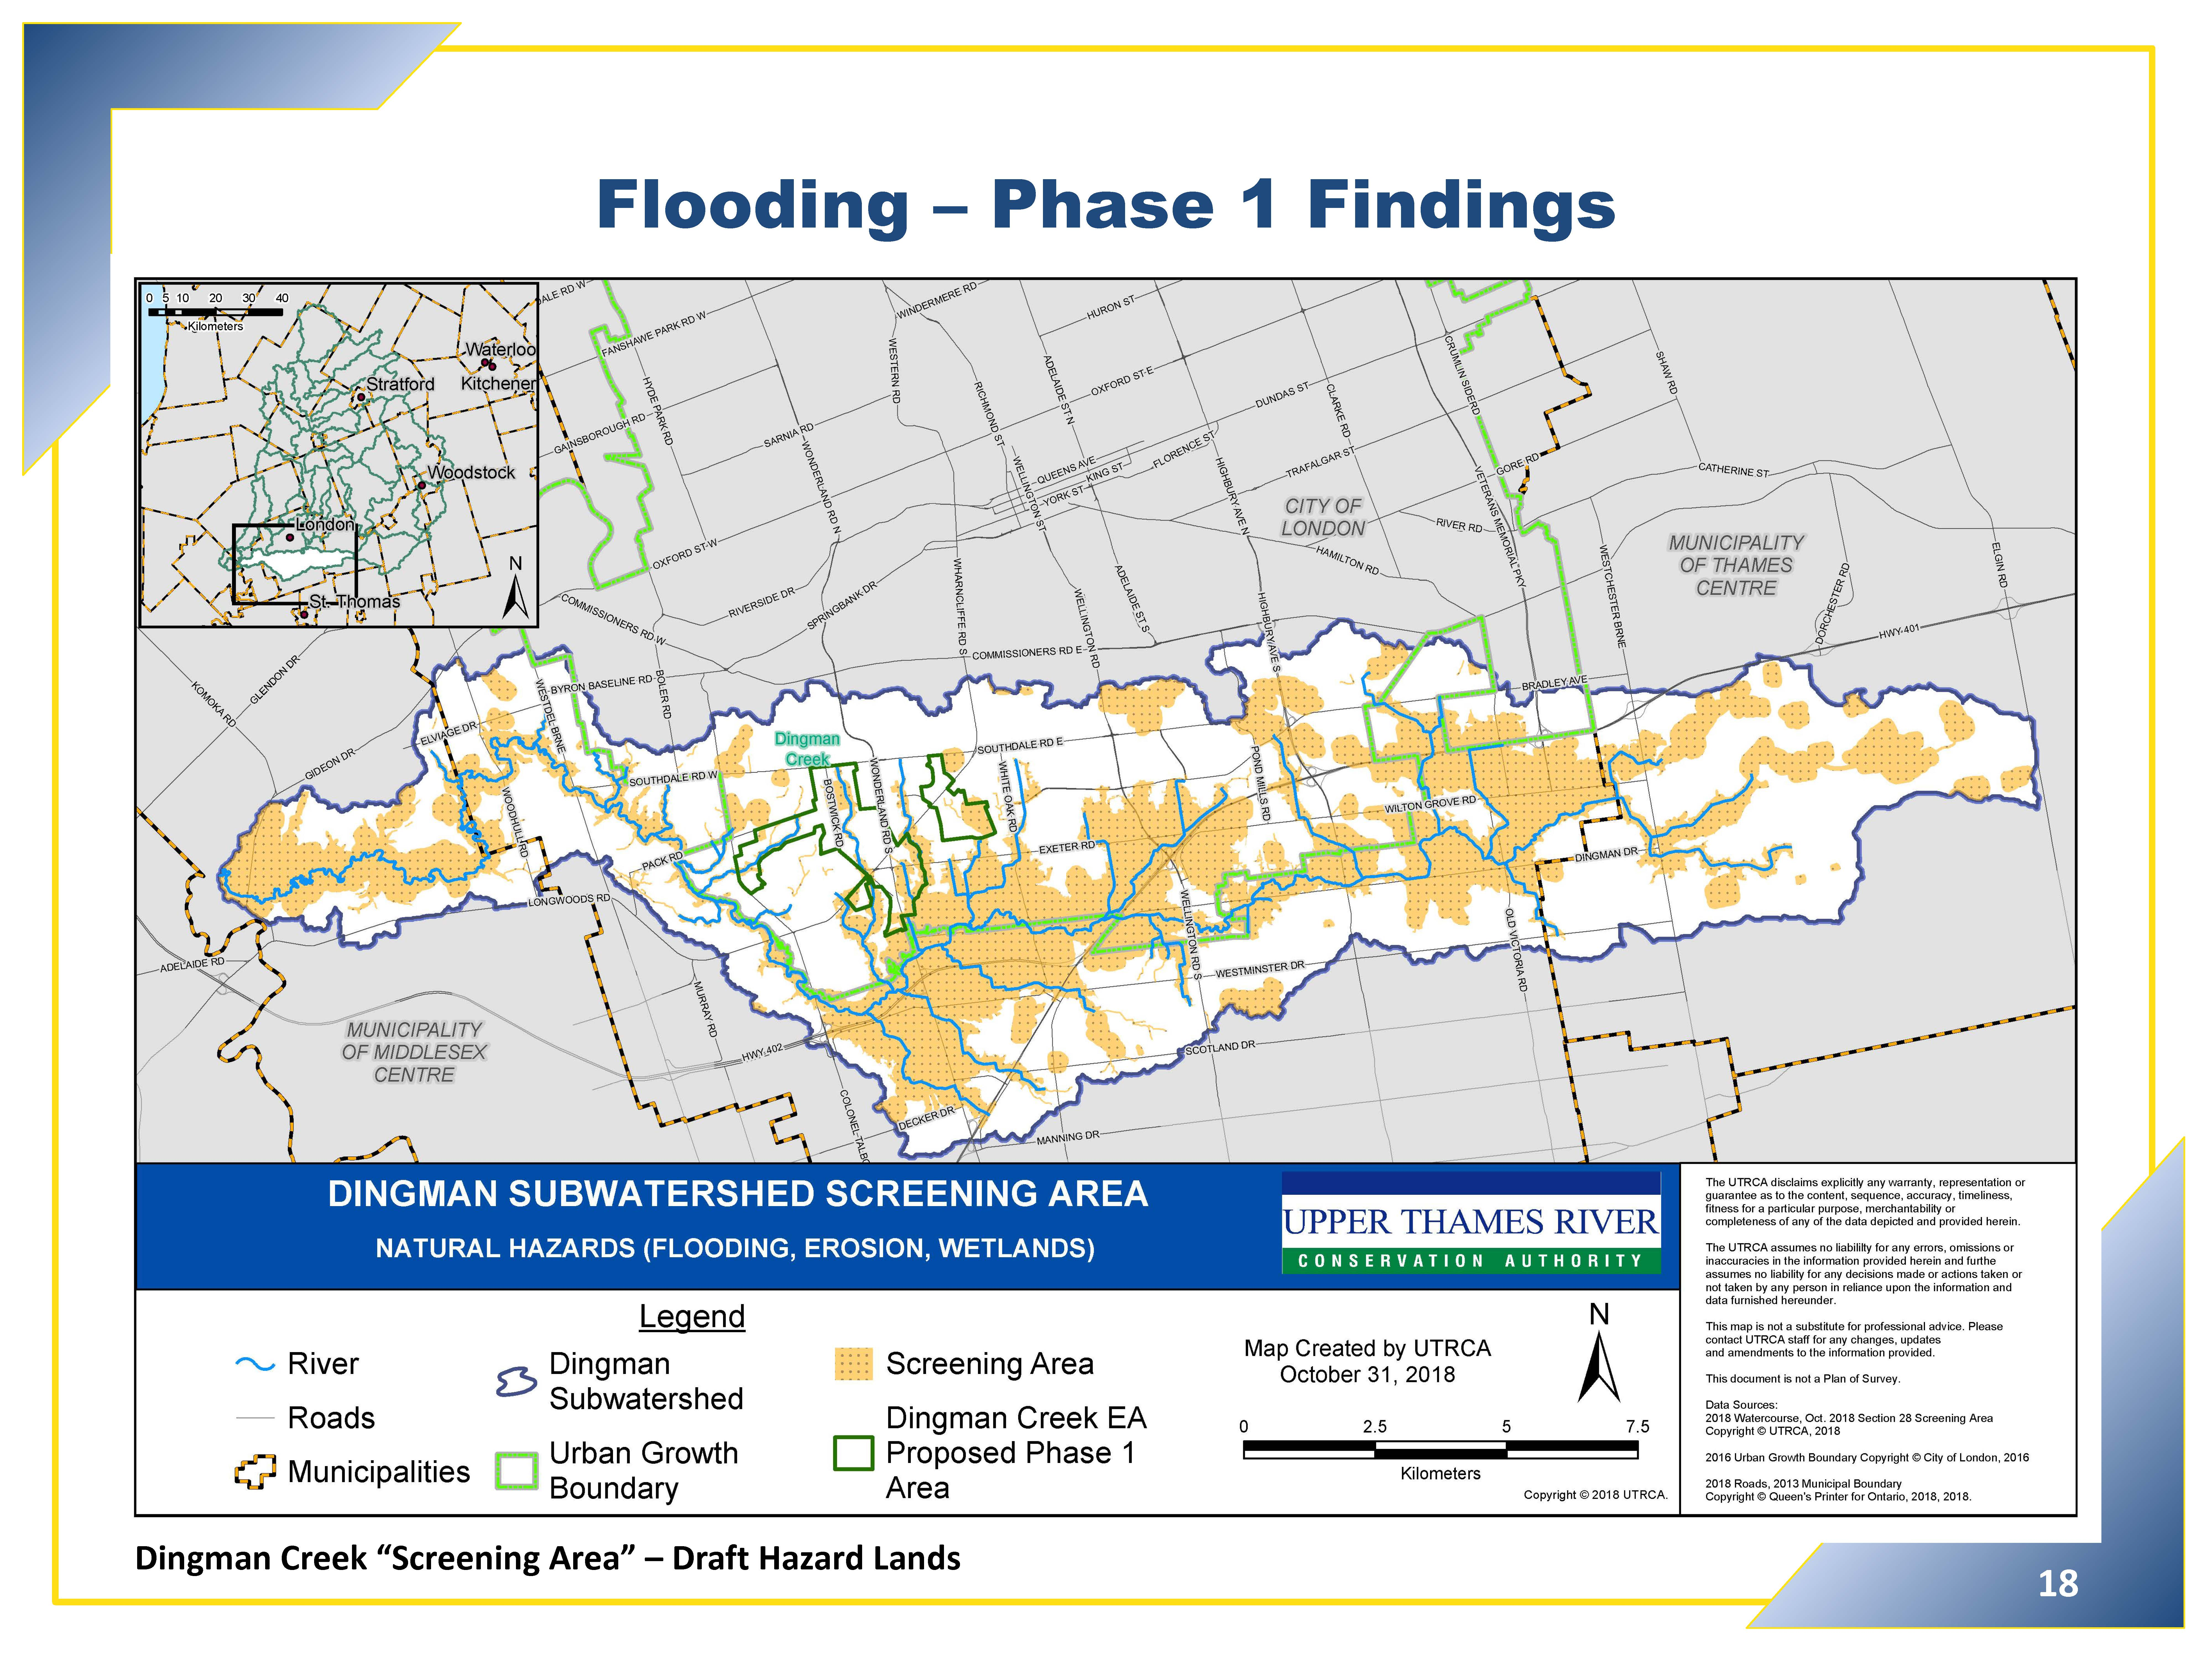 Flooding - Phase 1 Findings